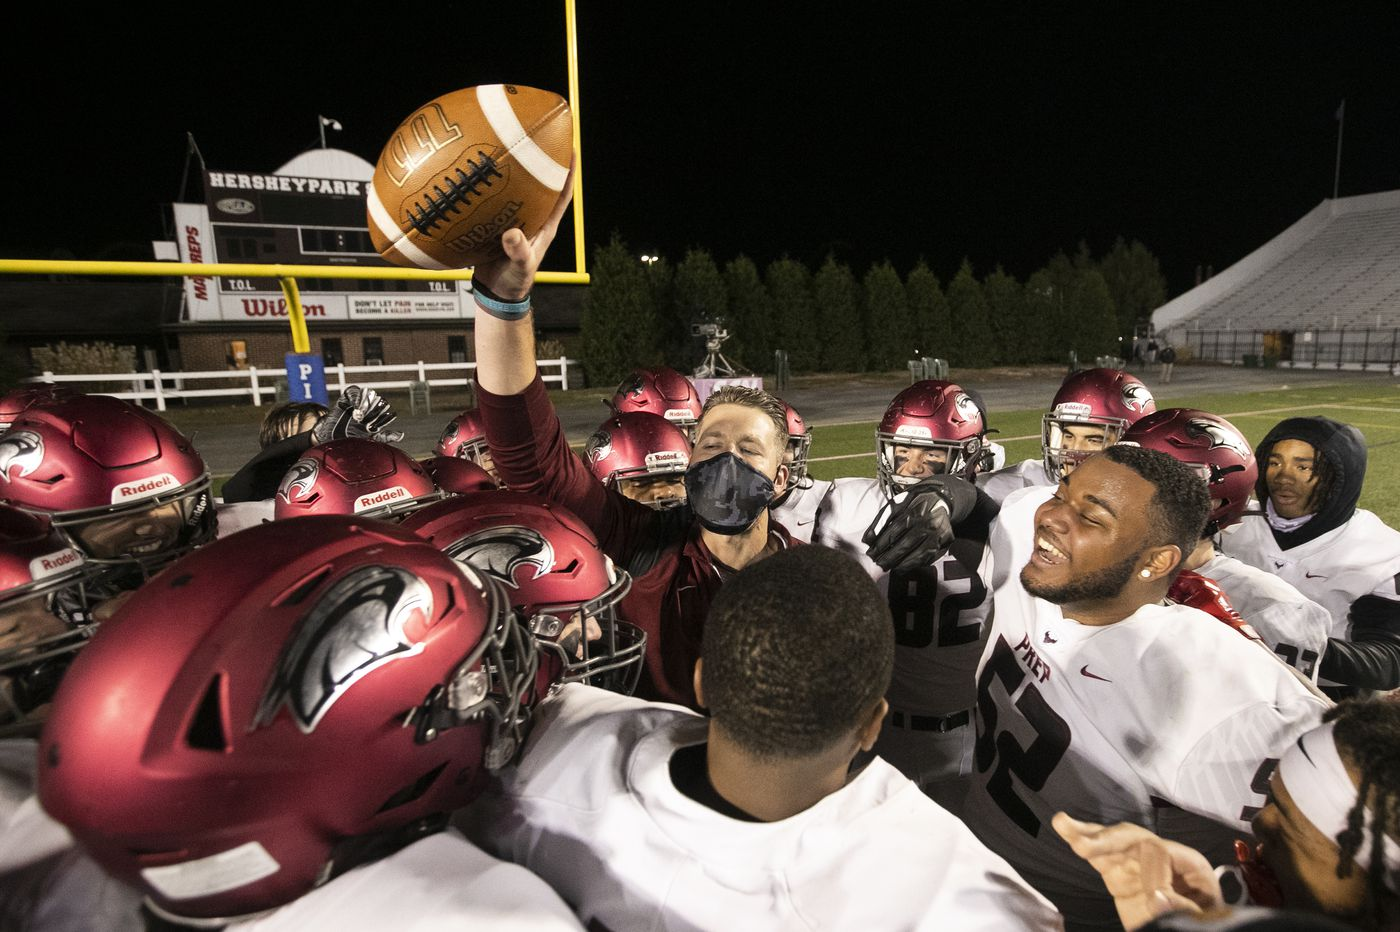 St. Joseph's Prep trounces Central York, 62-13, to capture third straight state championship